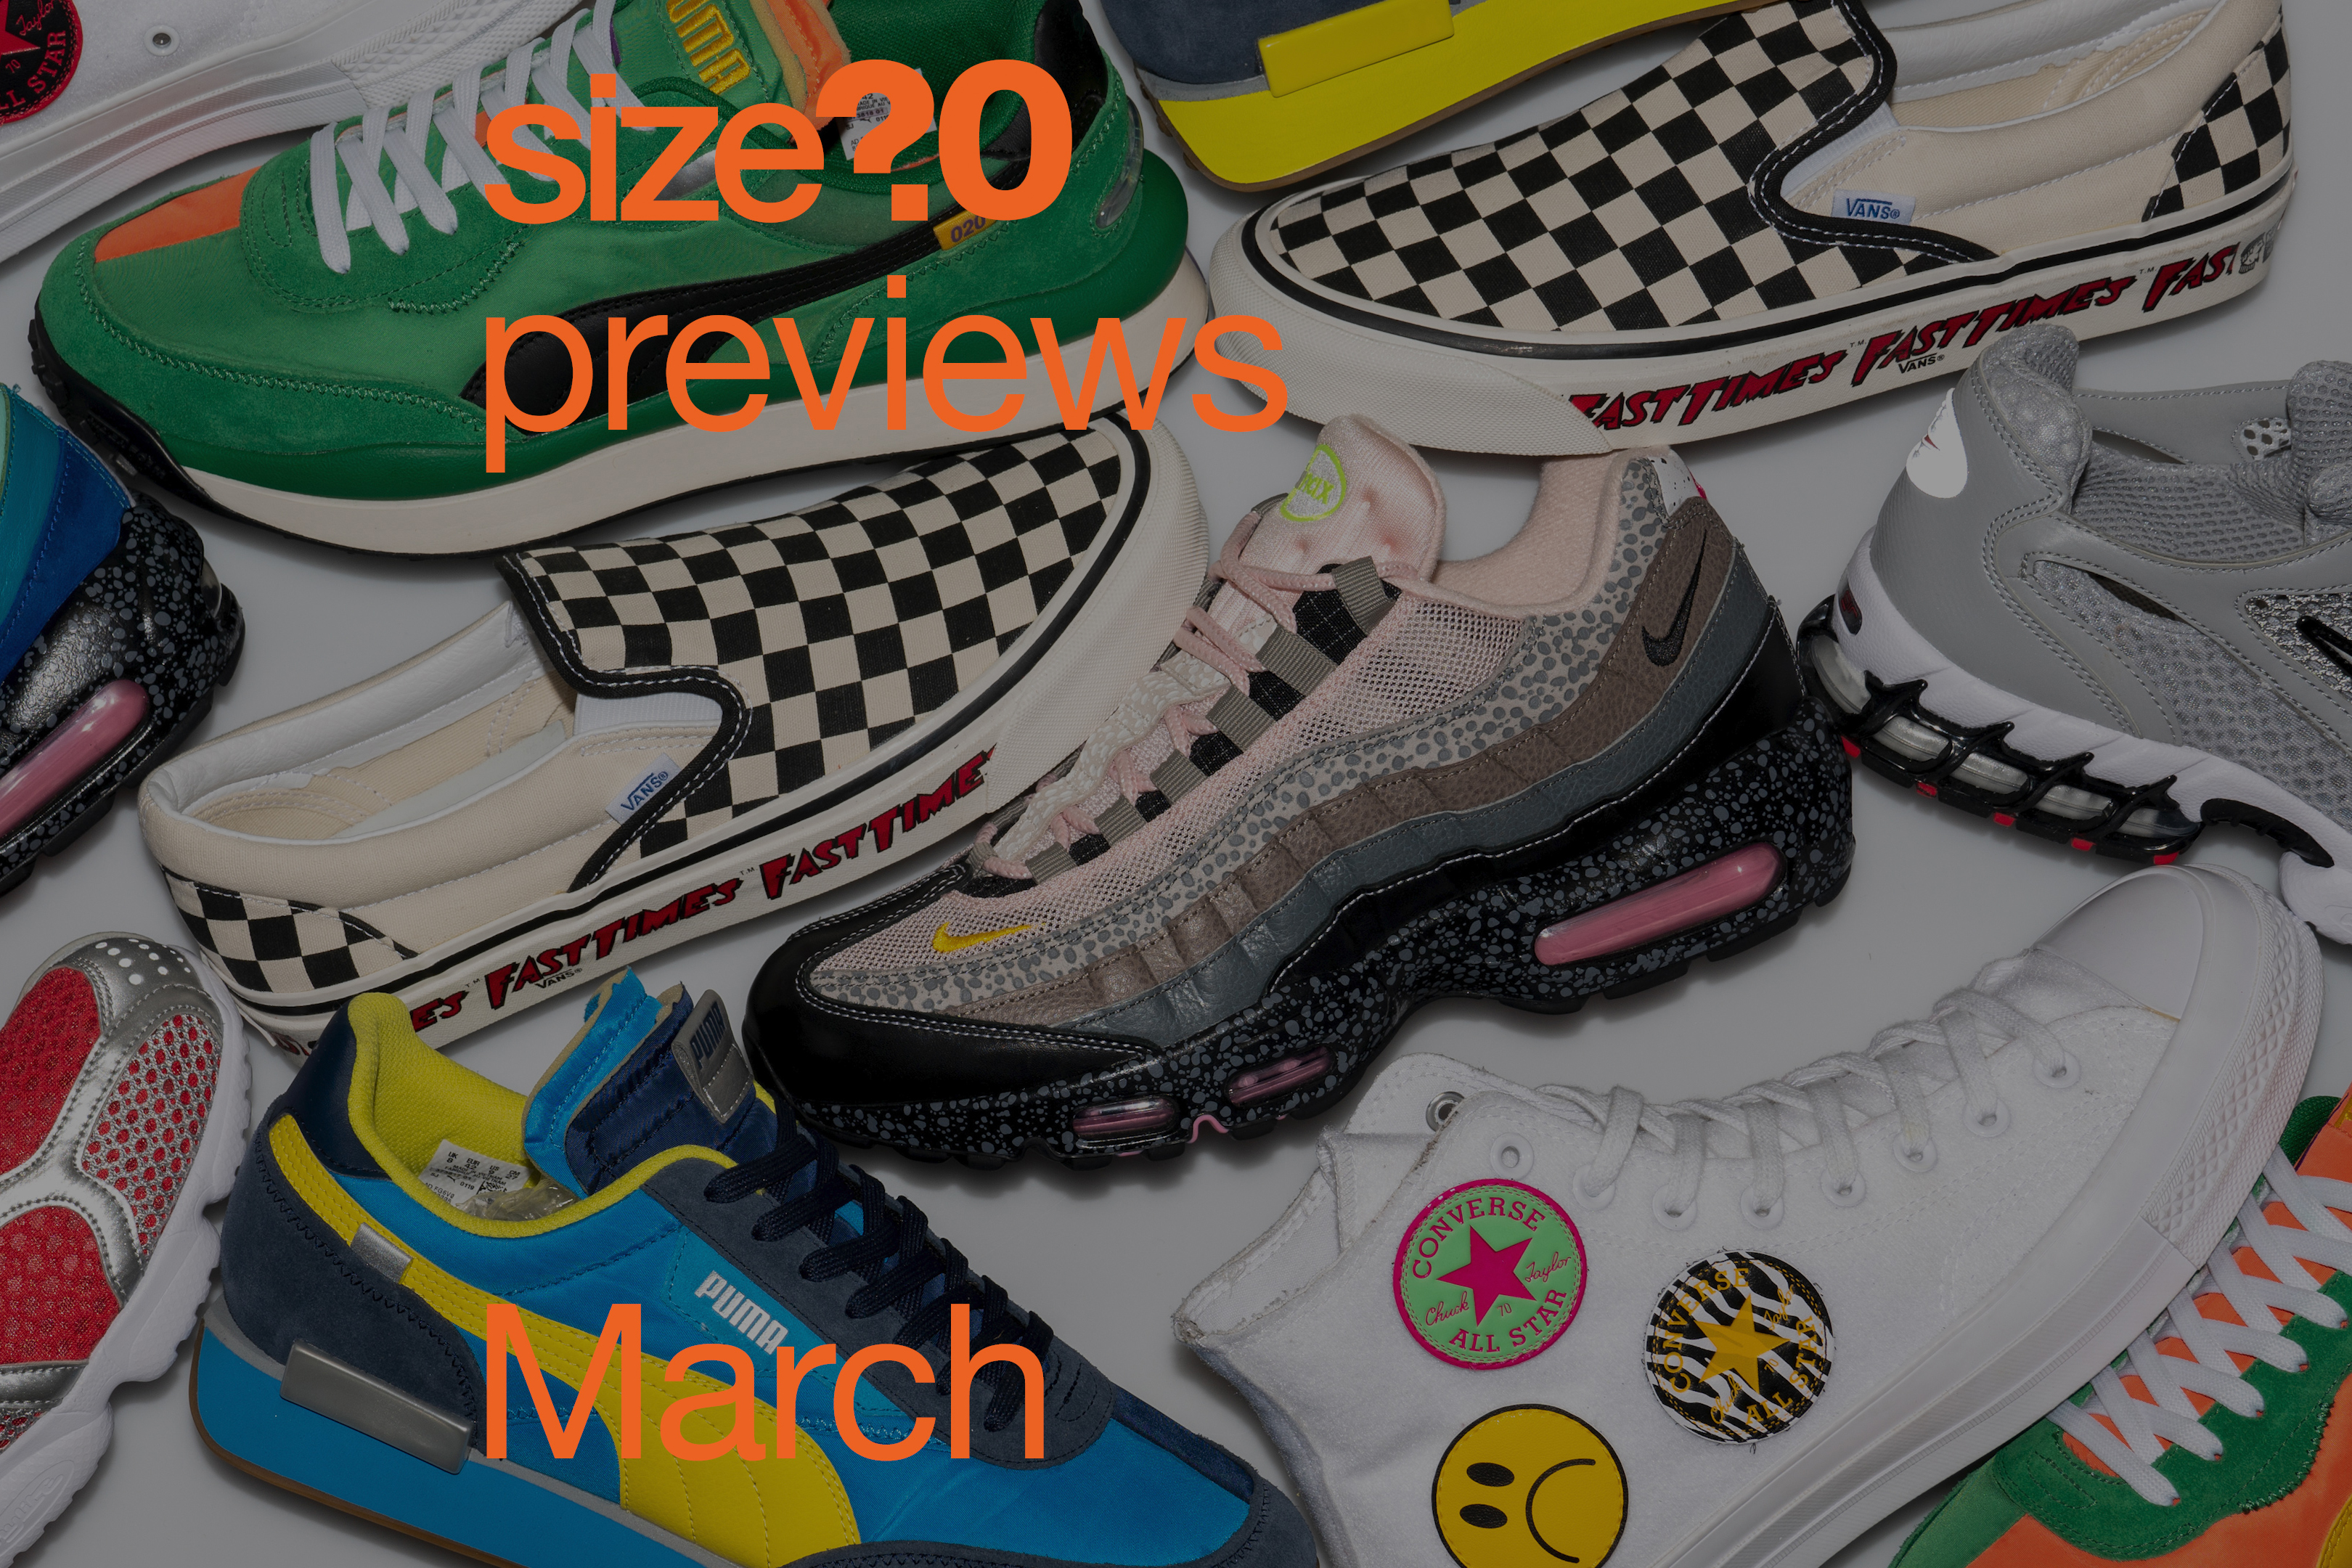 Nike Air Max 95 '20 for 20′, PUMA Fast Rider & Style Rider and more – size? previews March 2020